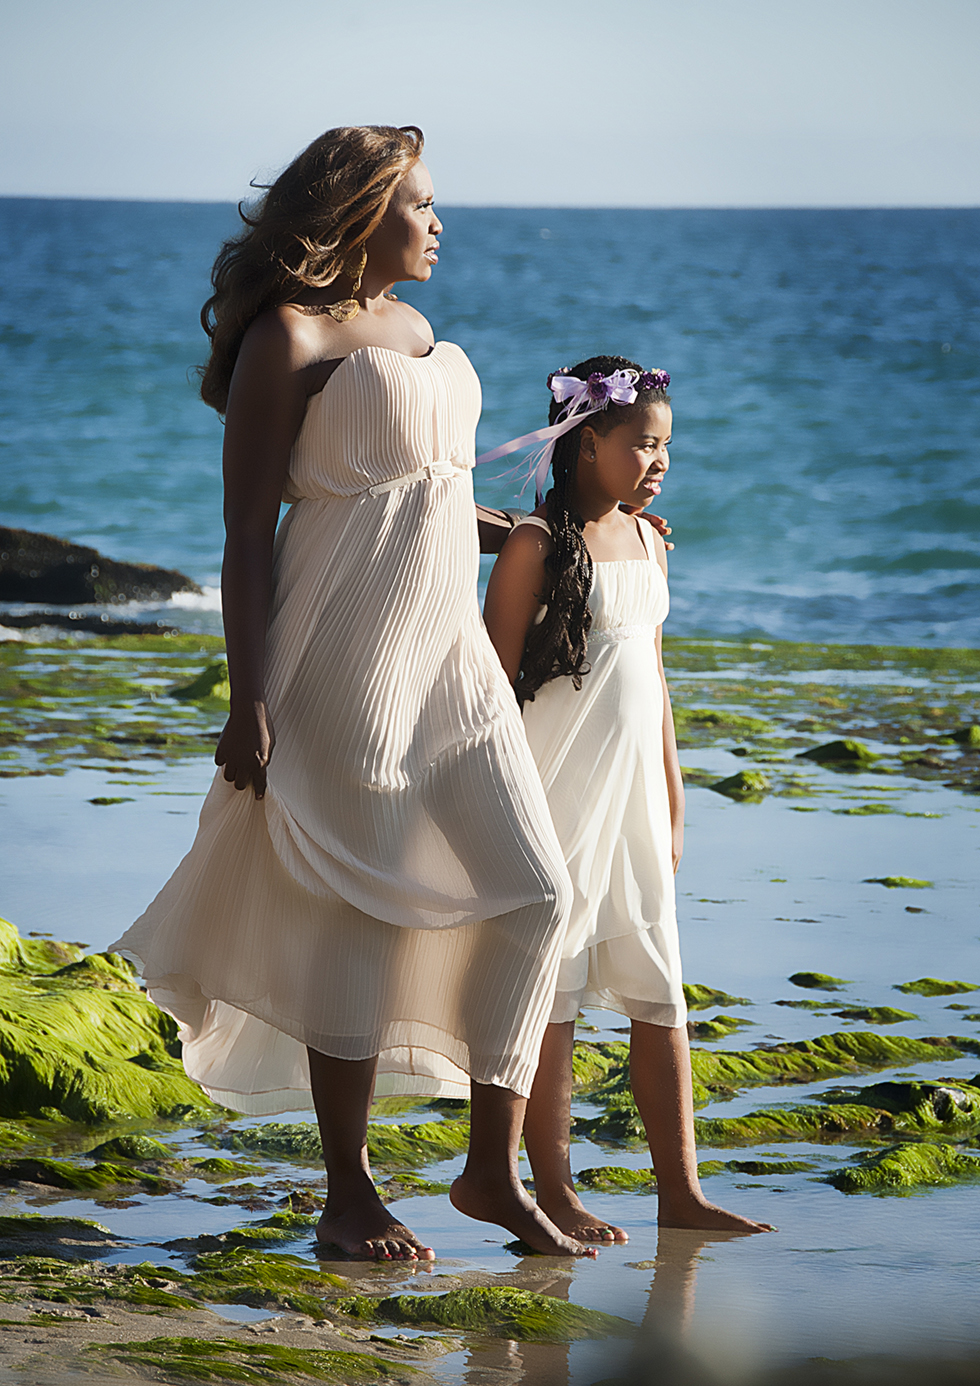 Laguna, Aliso Beach, Family Photography